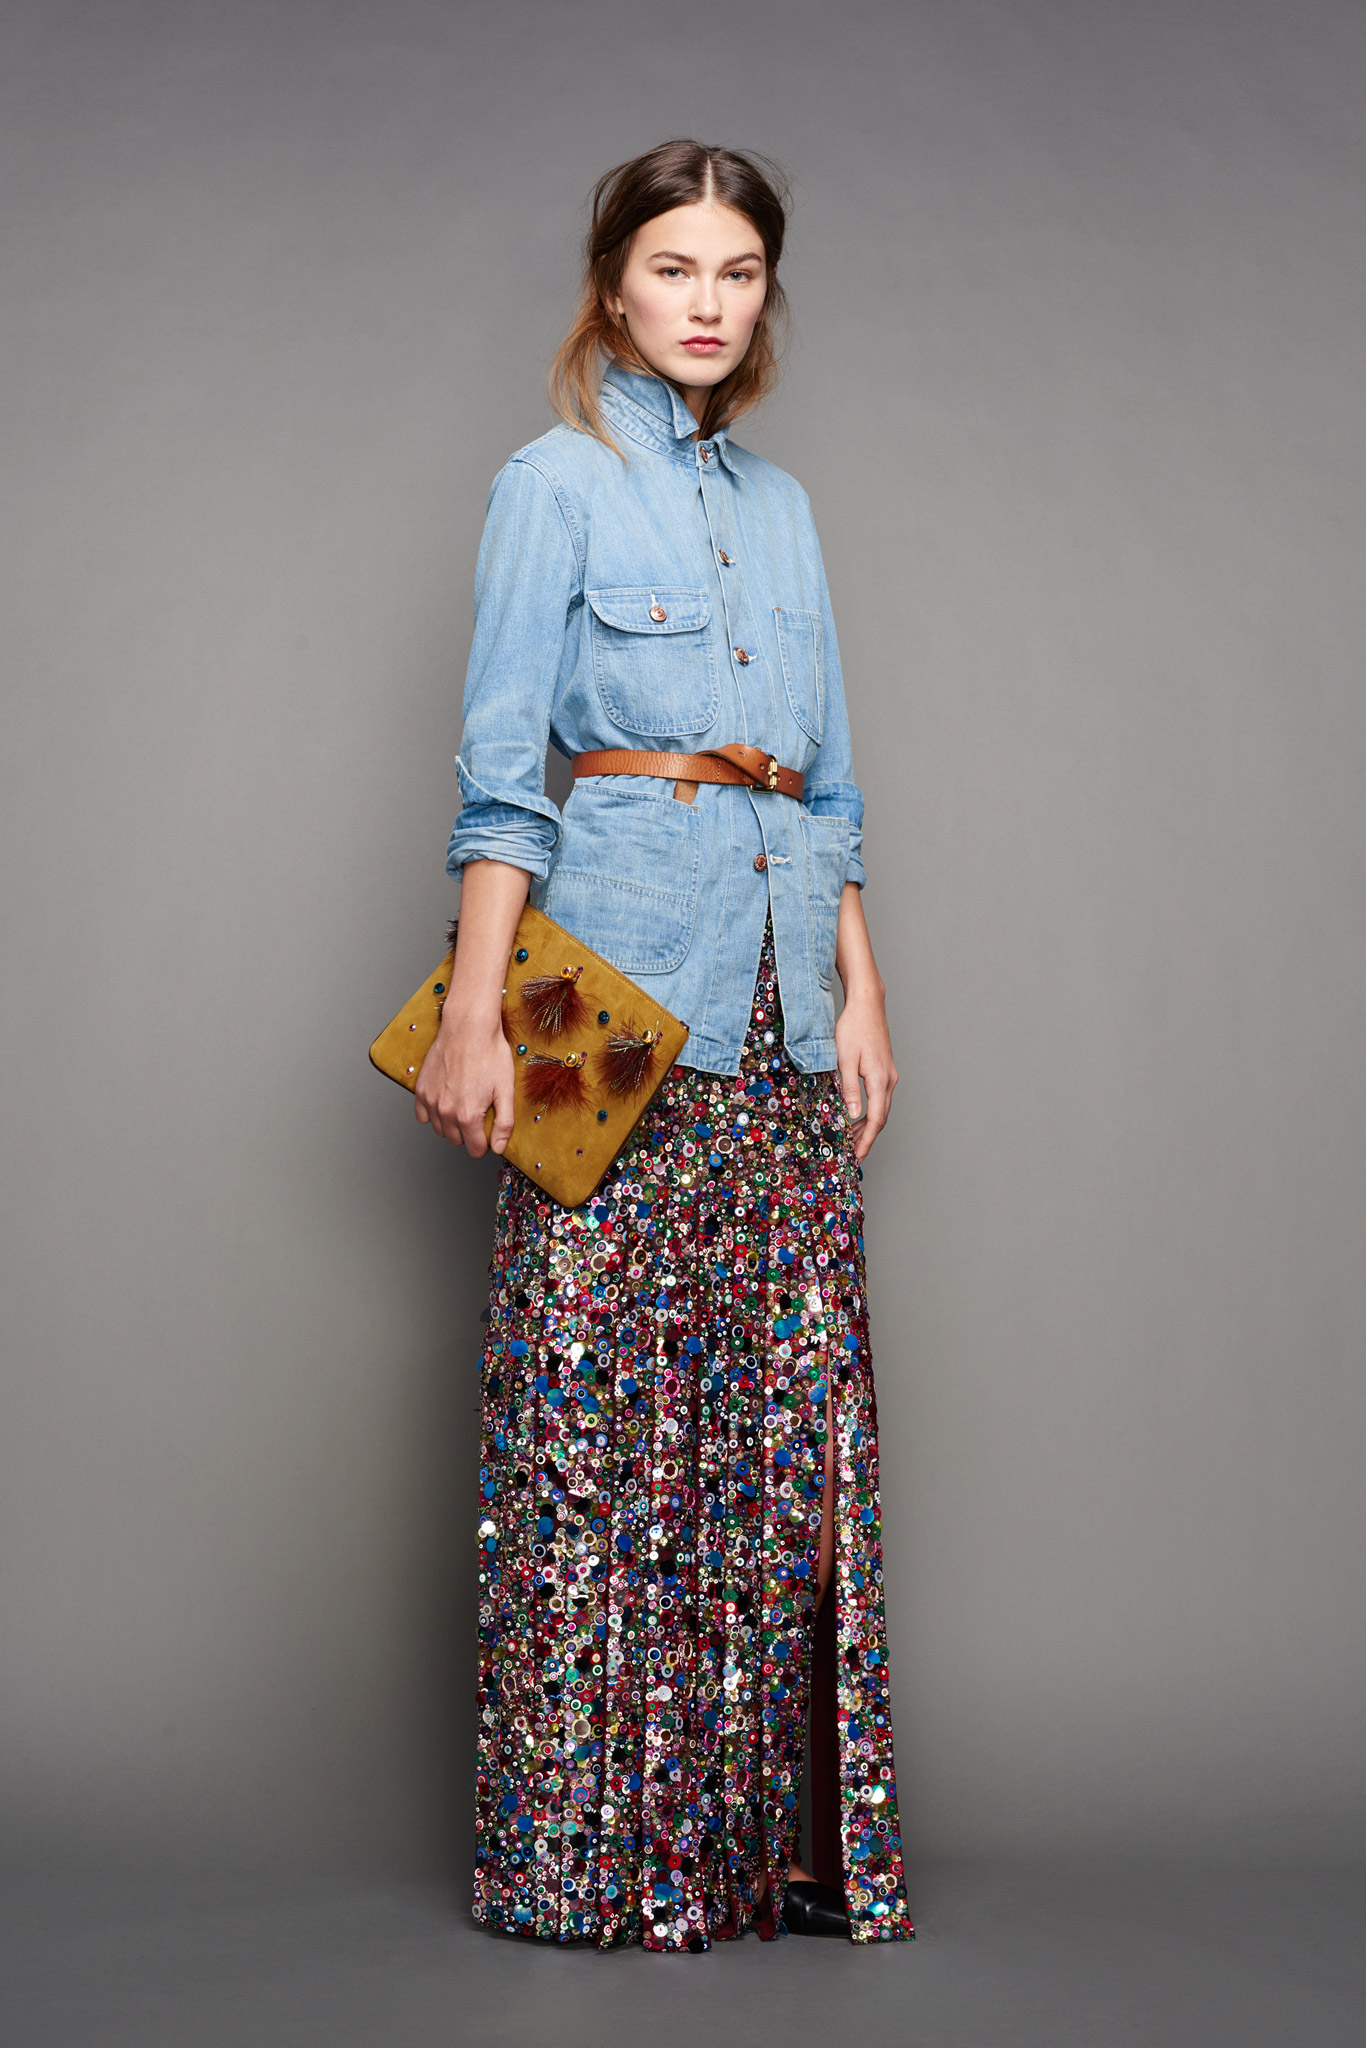 How to Wear a Maxi Skirt, According toInstagram How to Wear a Maxi Skirt, According toInstagram new pics